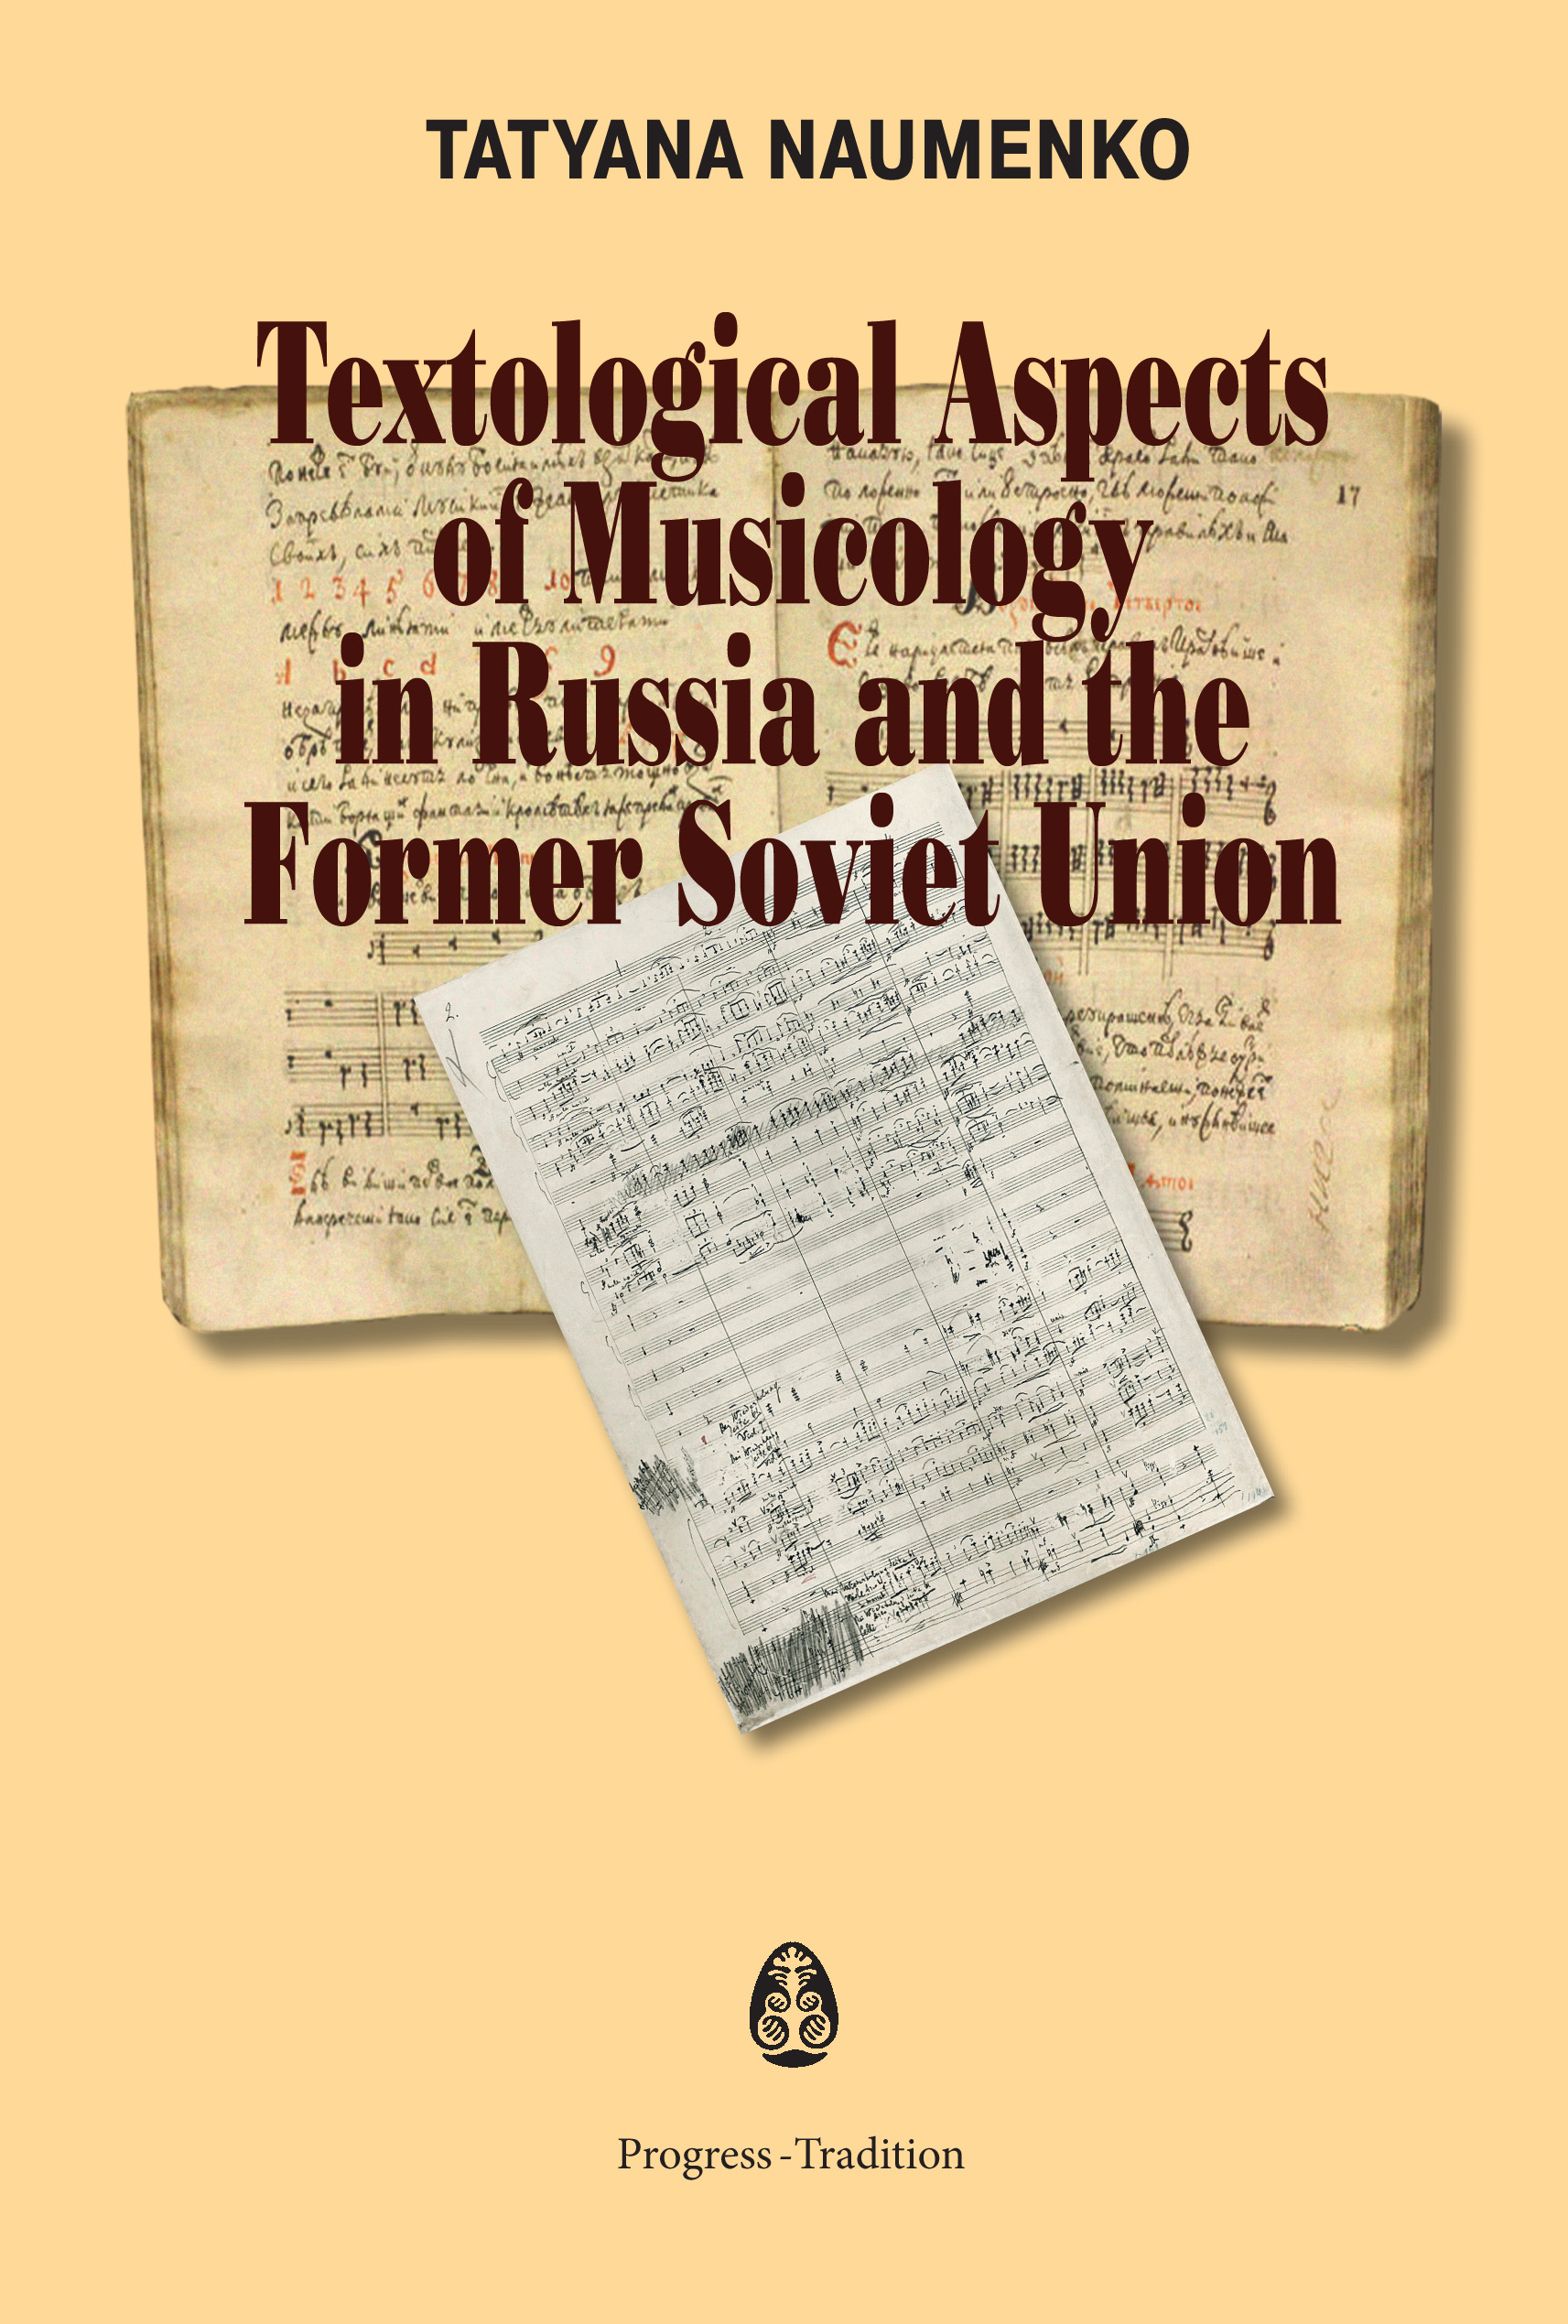 Tatyana Naumenko Textological Aspects of Musicology in Russia and the Former Soviet Union oil pump with 2pcs worm gear wheel fits husqvarna 61 266 268 162 272 replace 501512501 501513801